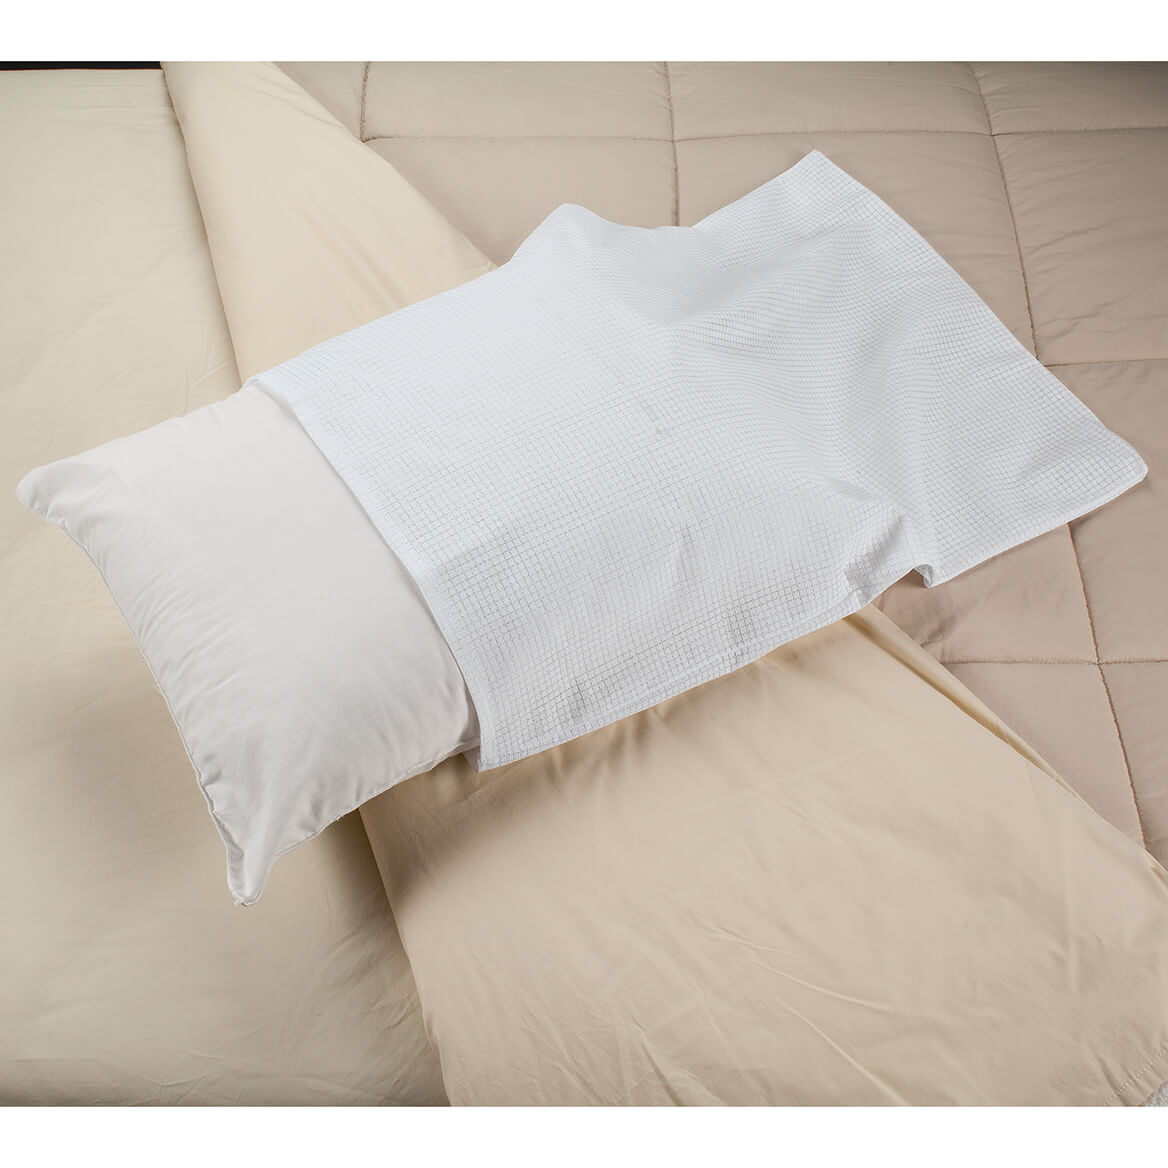 Simply Cool Pillow Wraps 2-Pack-362976